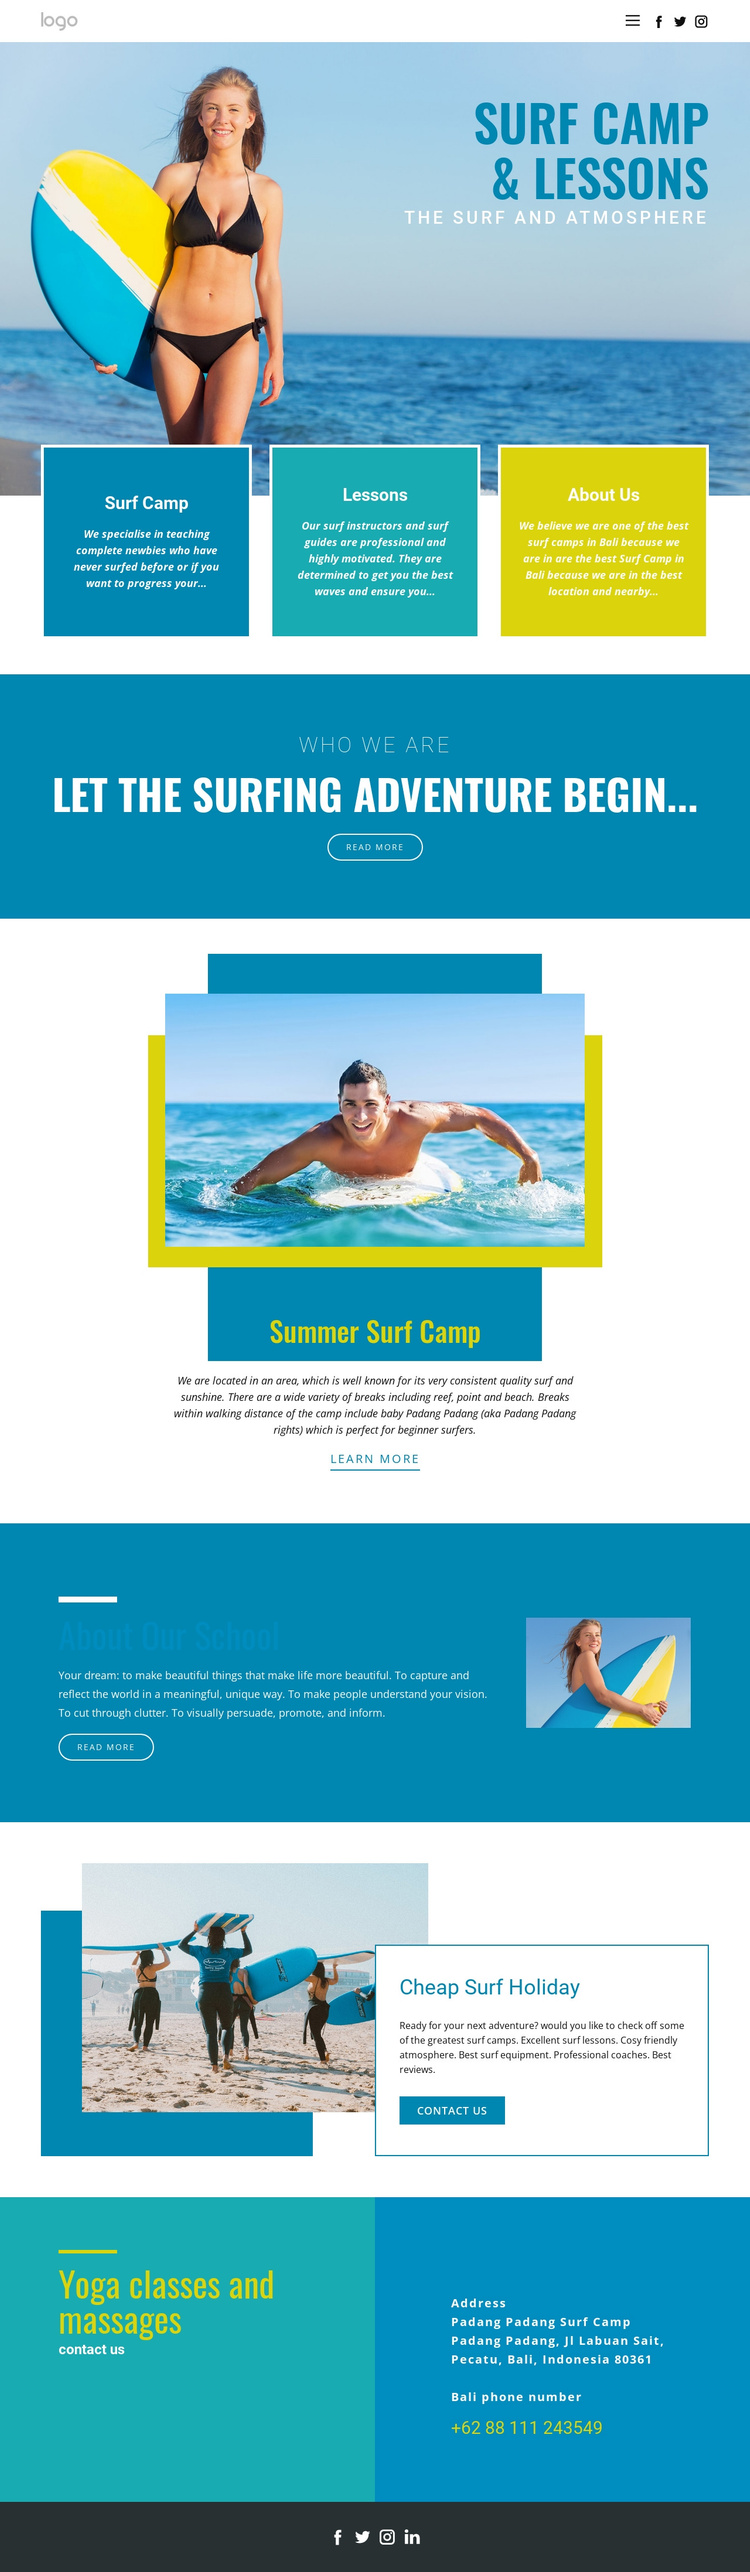 Camp for summer sports Joomla Template